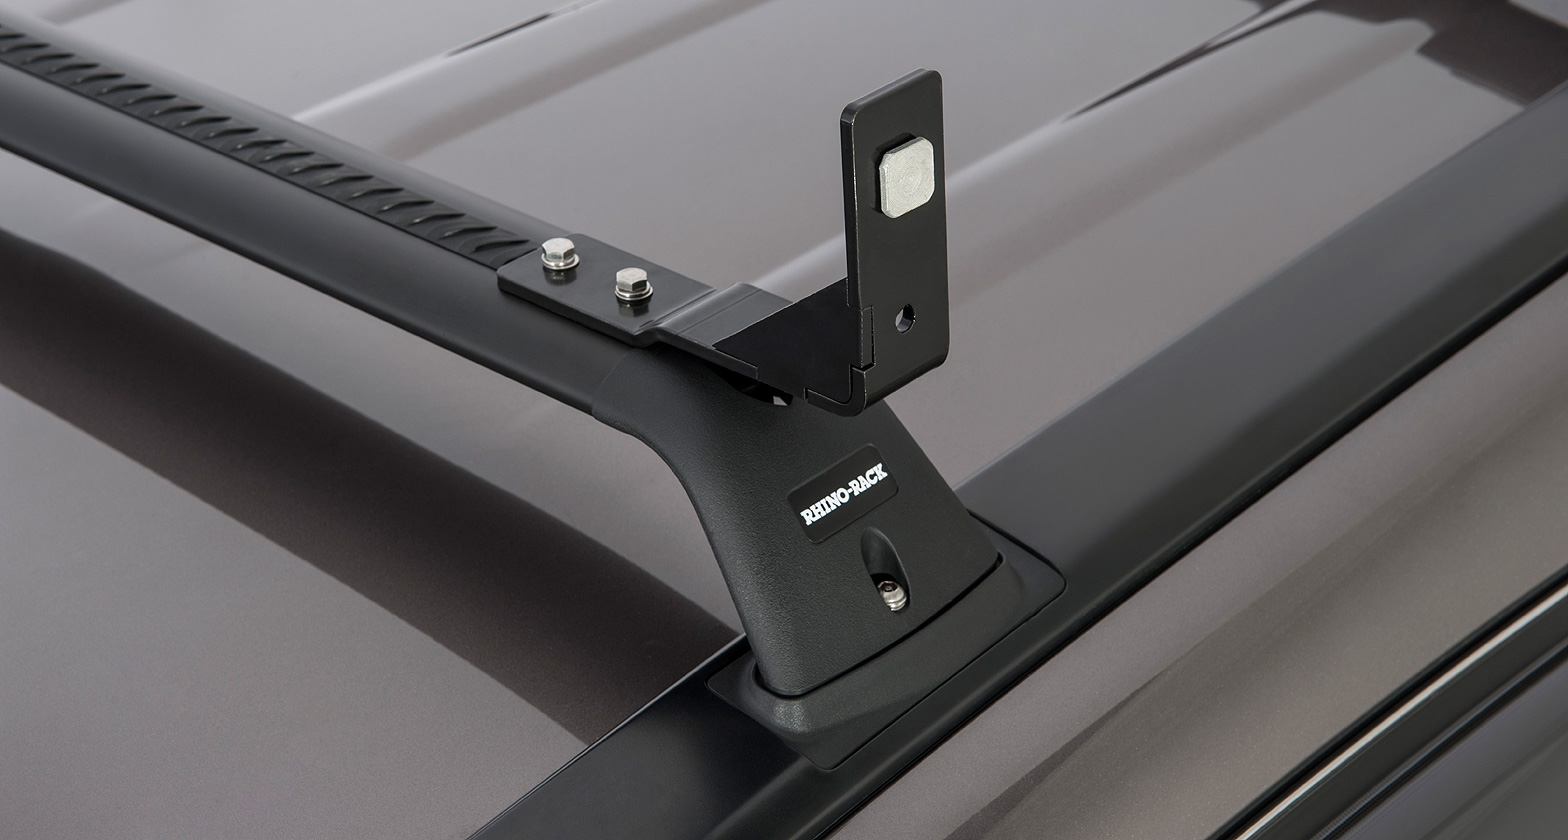 Sunseeker Awning Bracket For Flush Bars